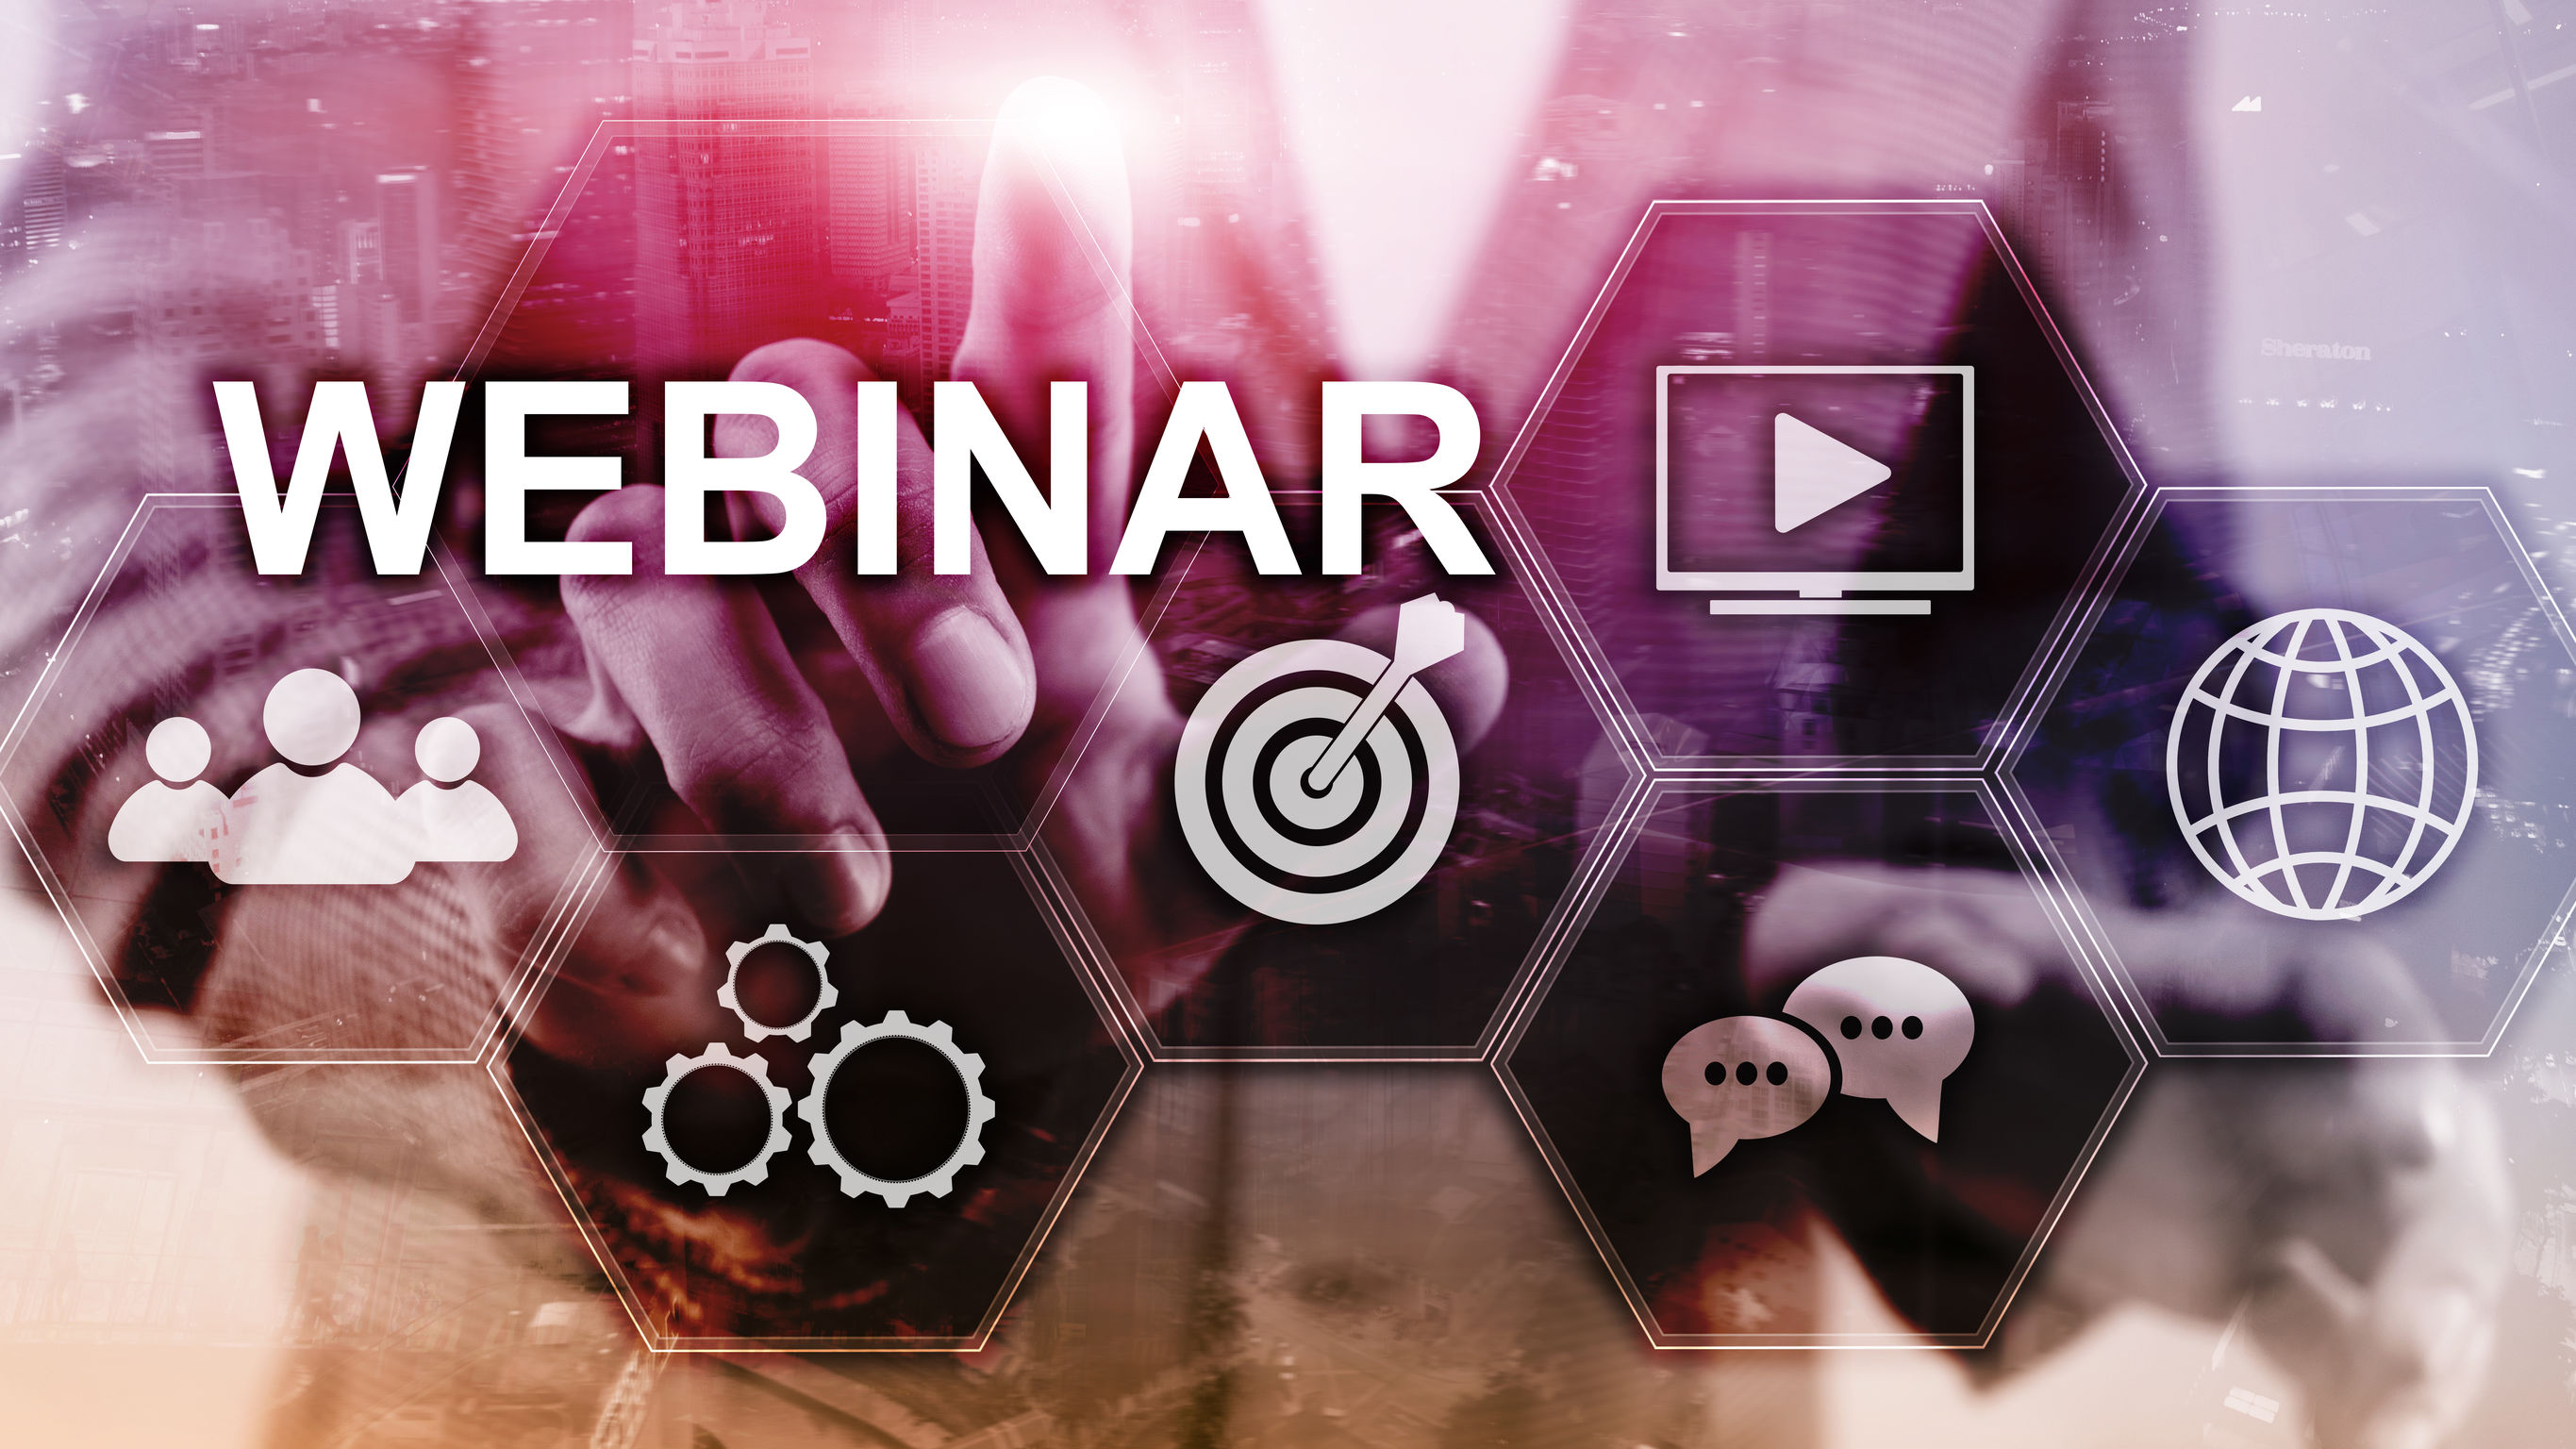 Explore What aACE Can Do for You in Our October Webinars